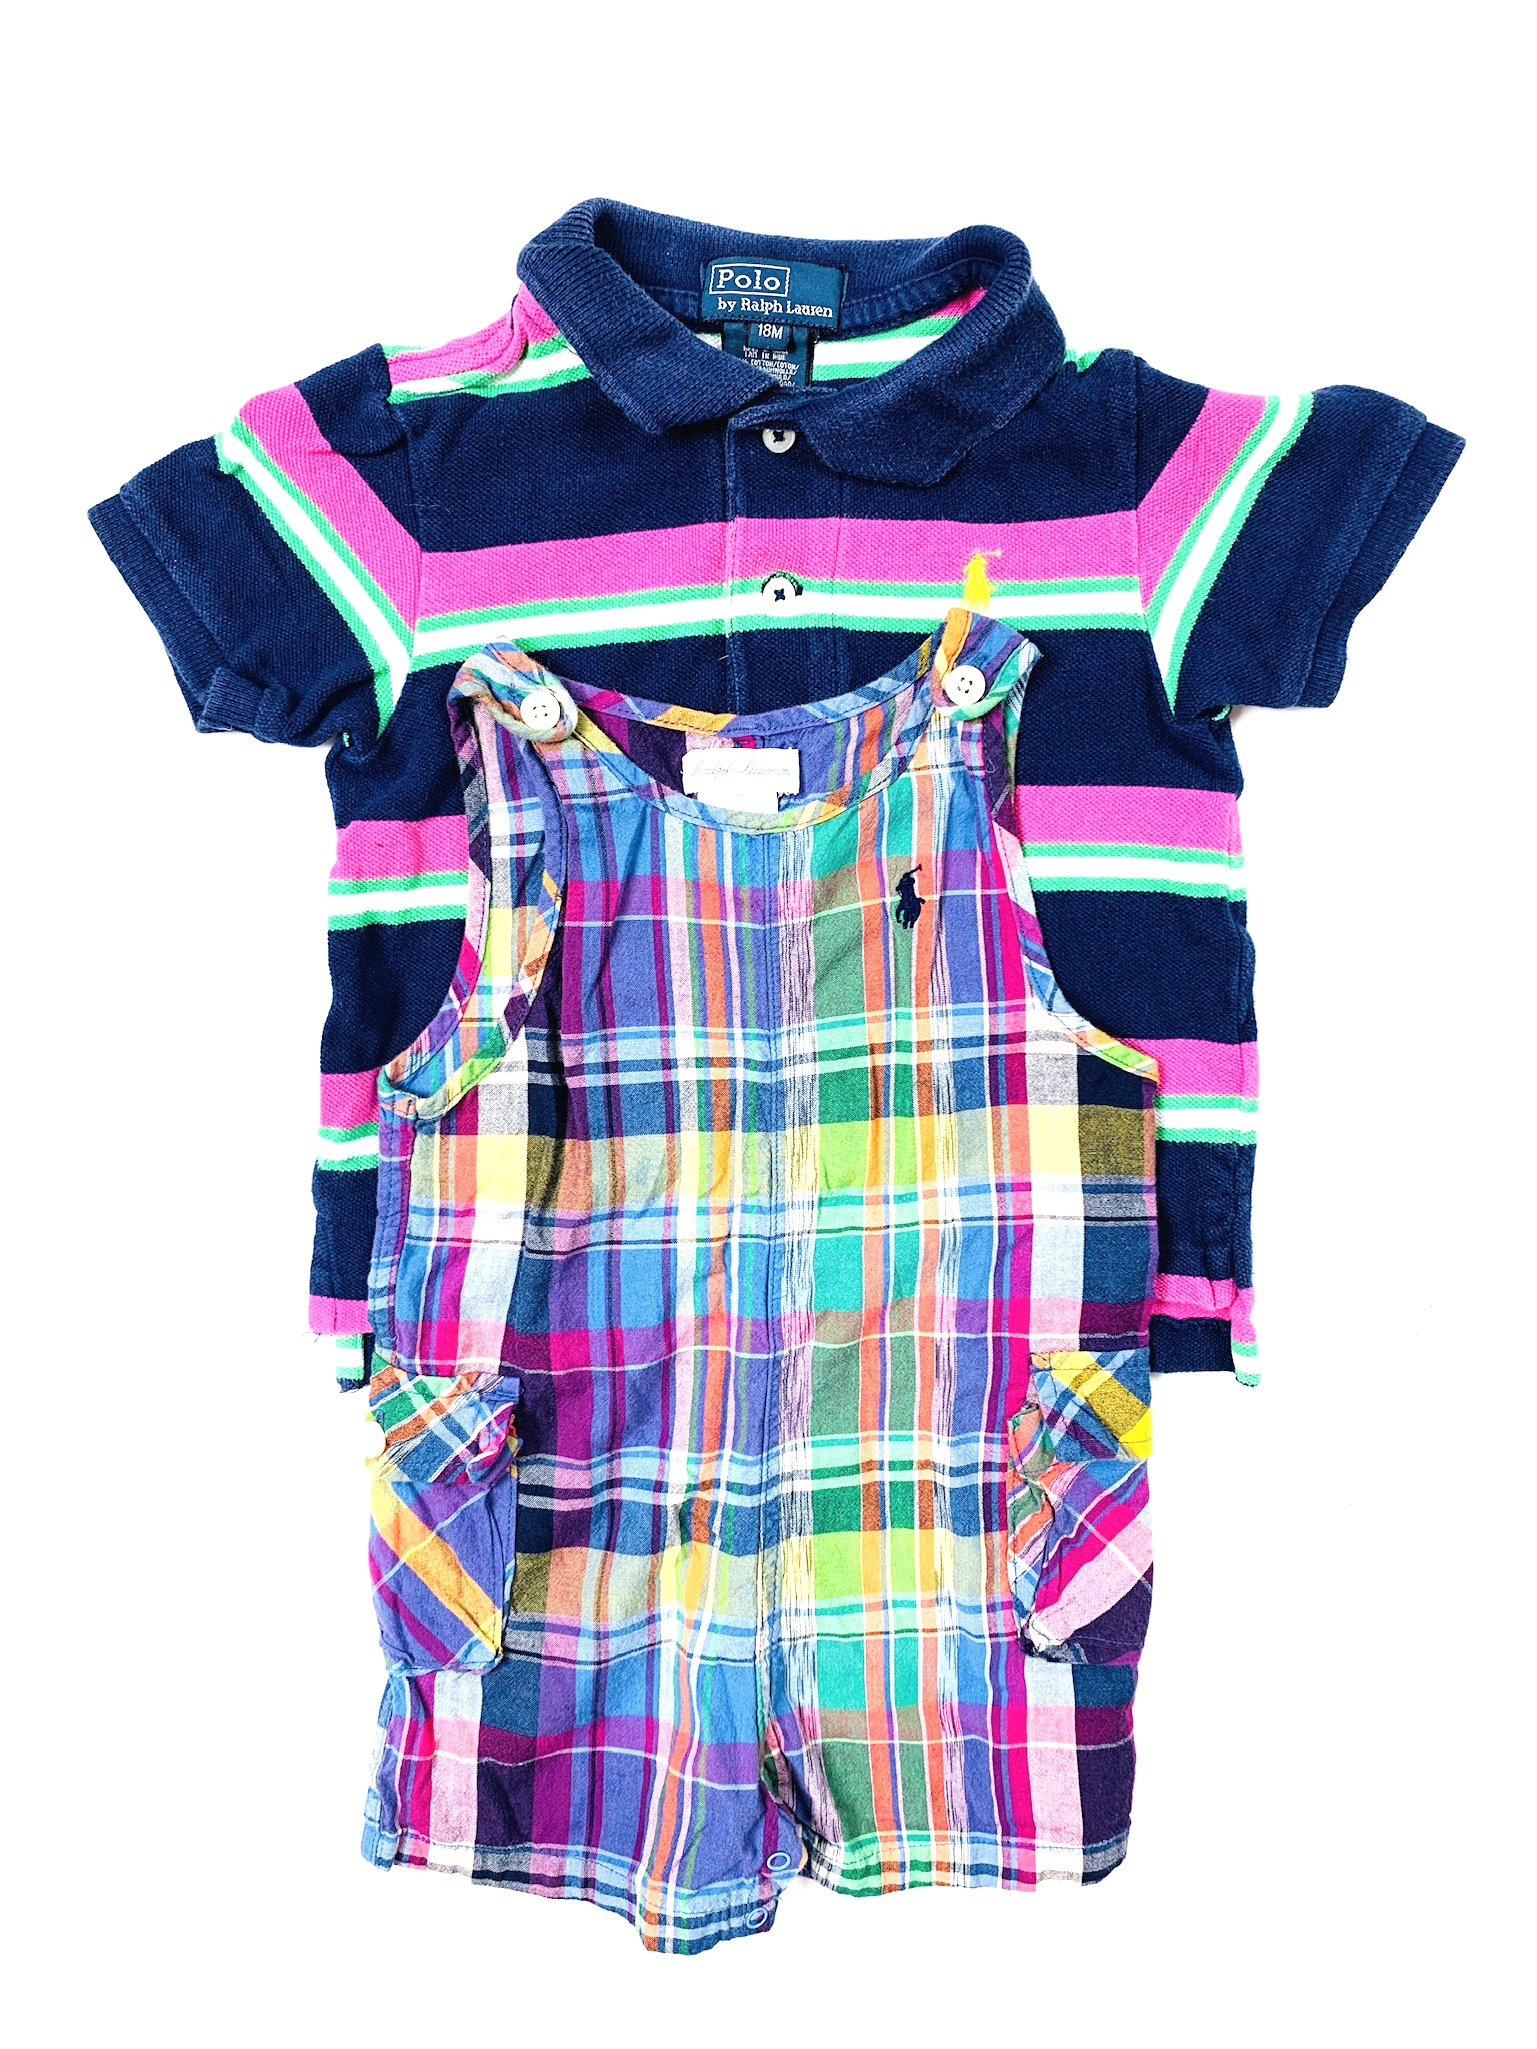 Polo Ralph Lauren 12-18M Multi Category